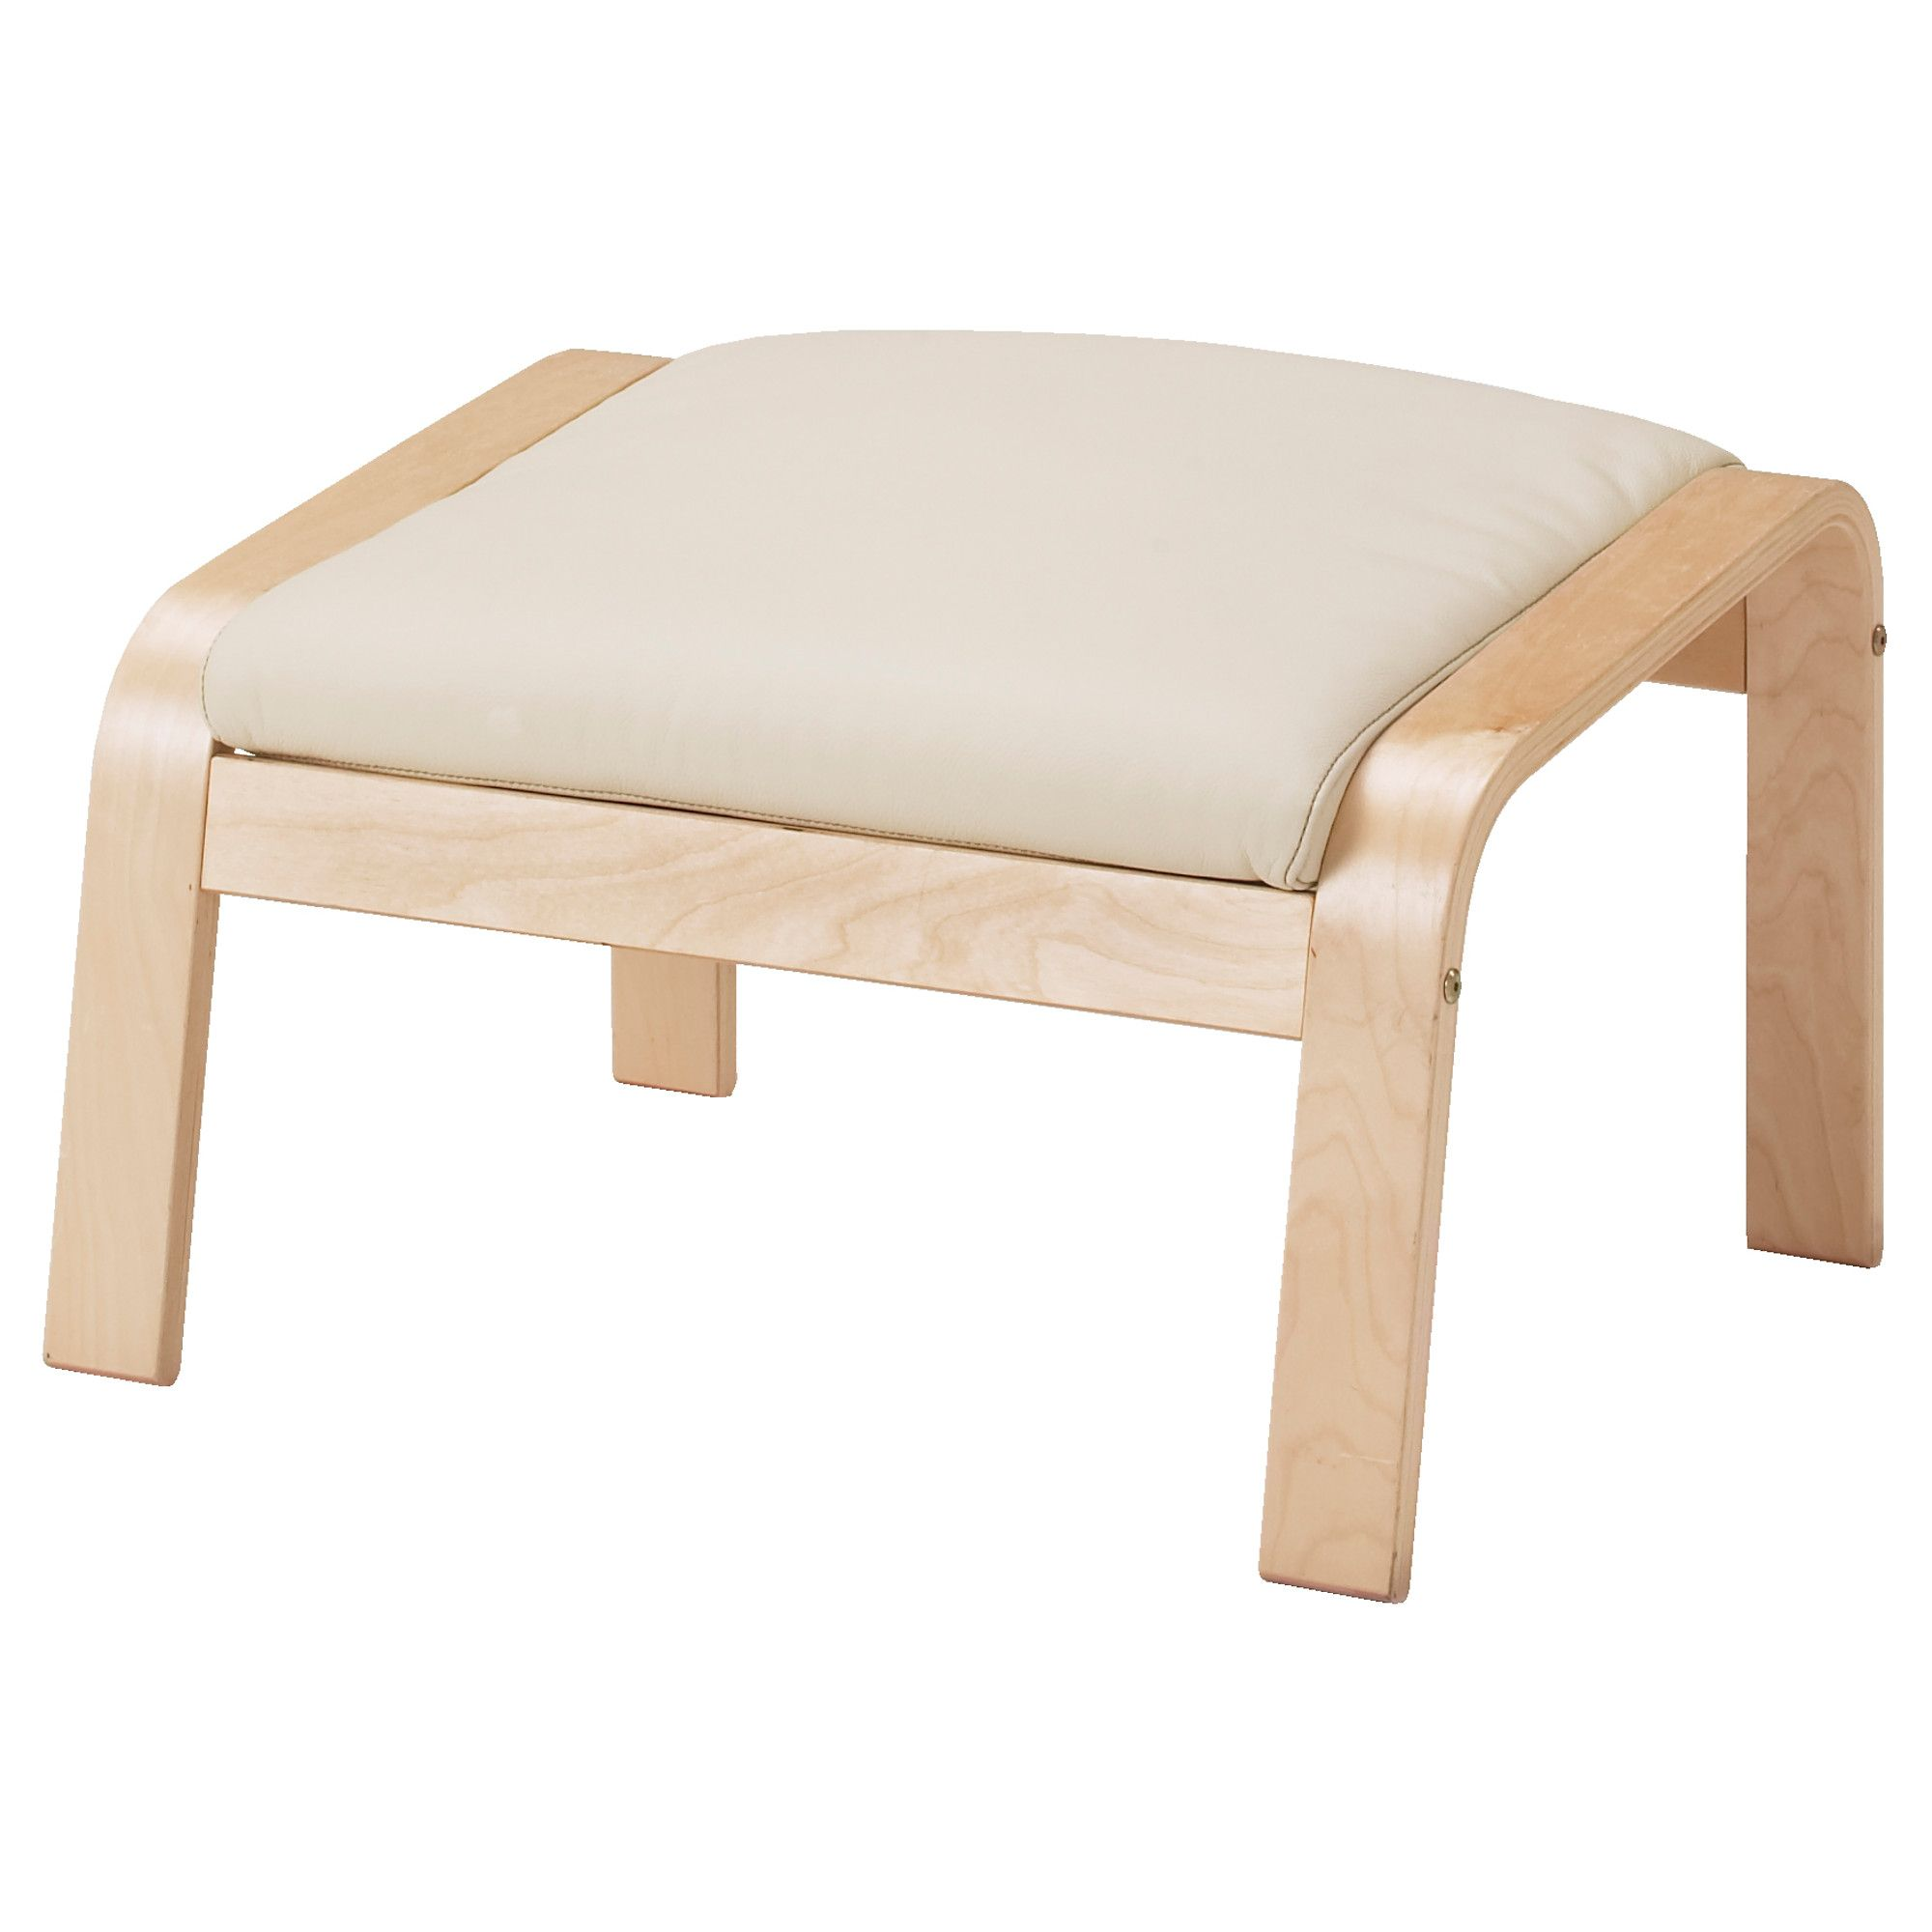 $89 Off White Leather POÄNG Footstool   Robust Off White, Birch Veneer    IKEA